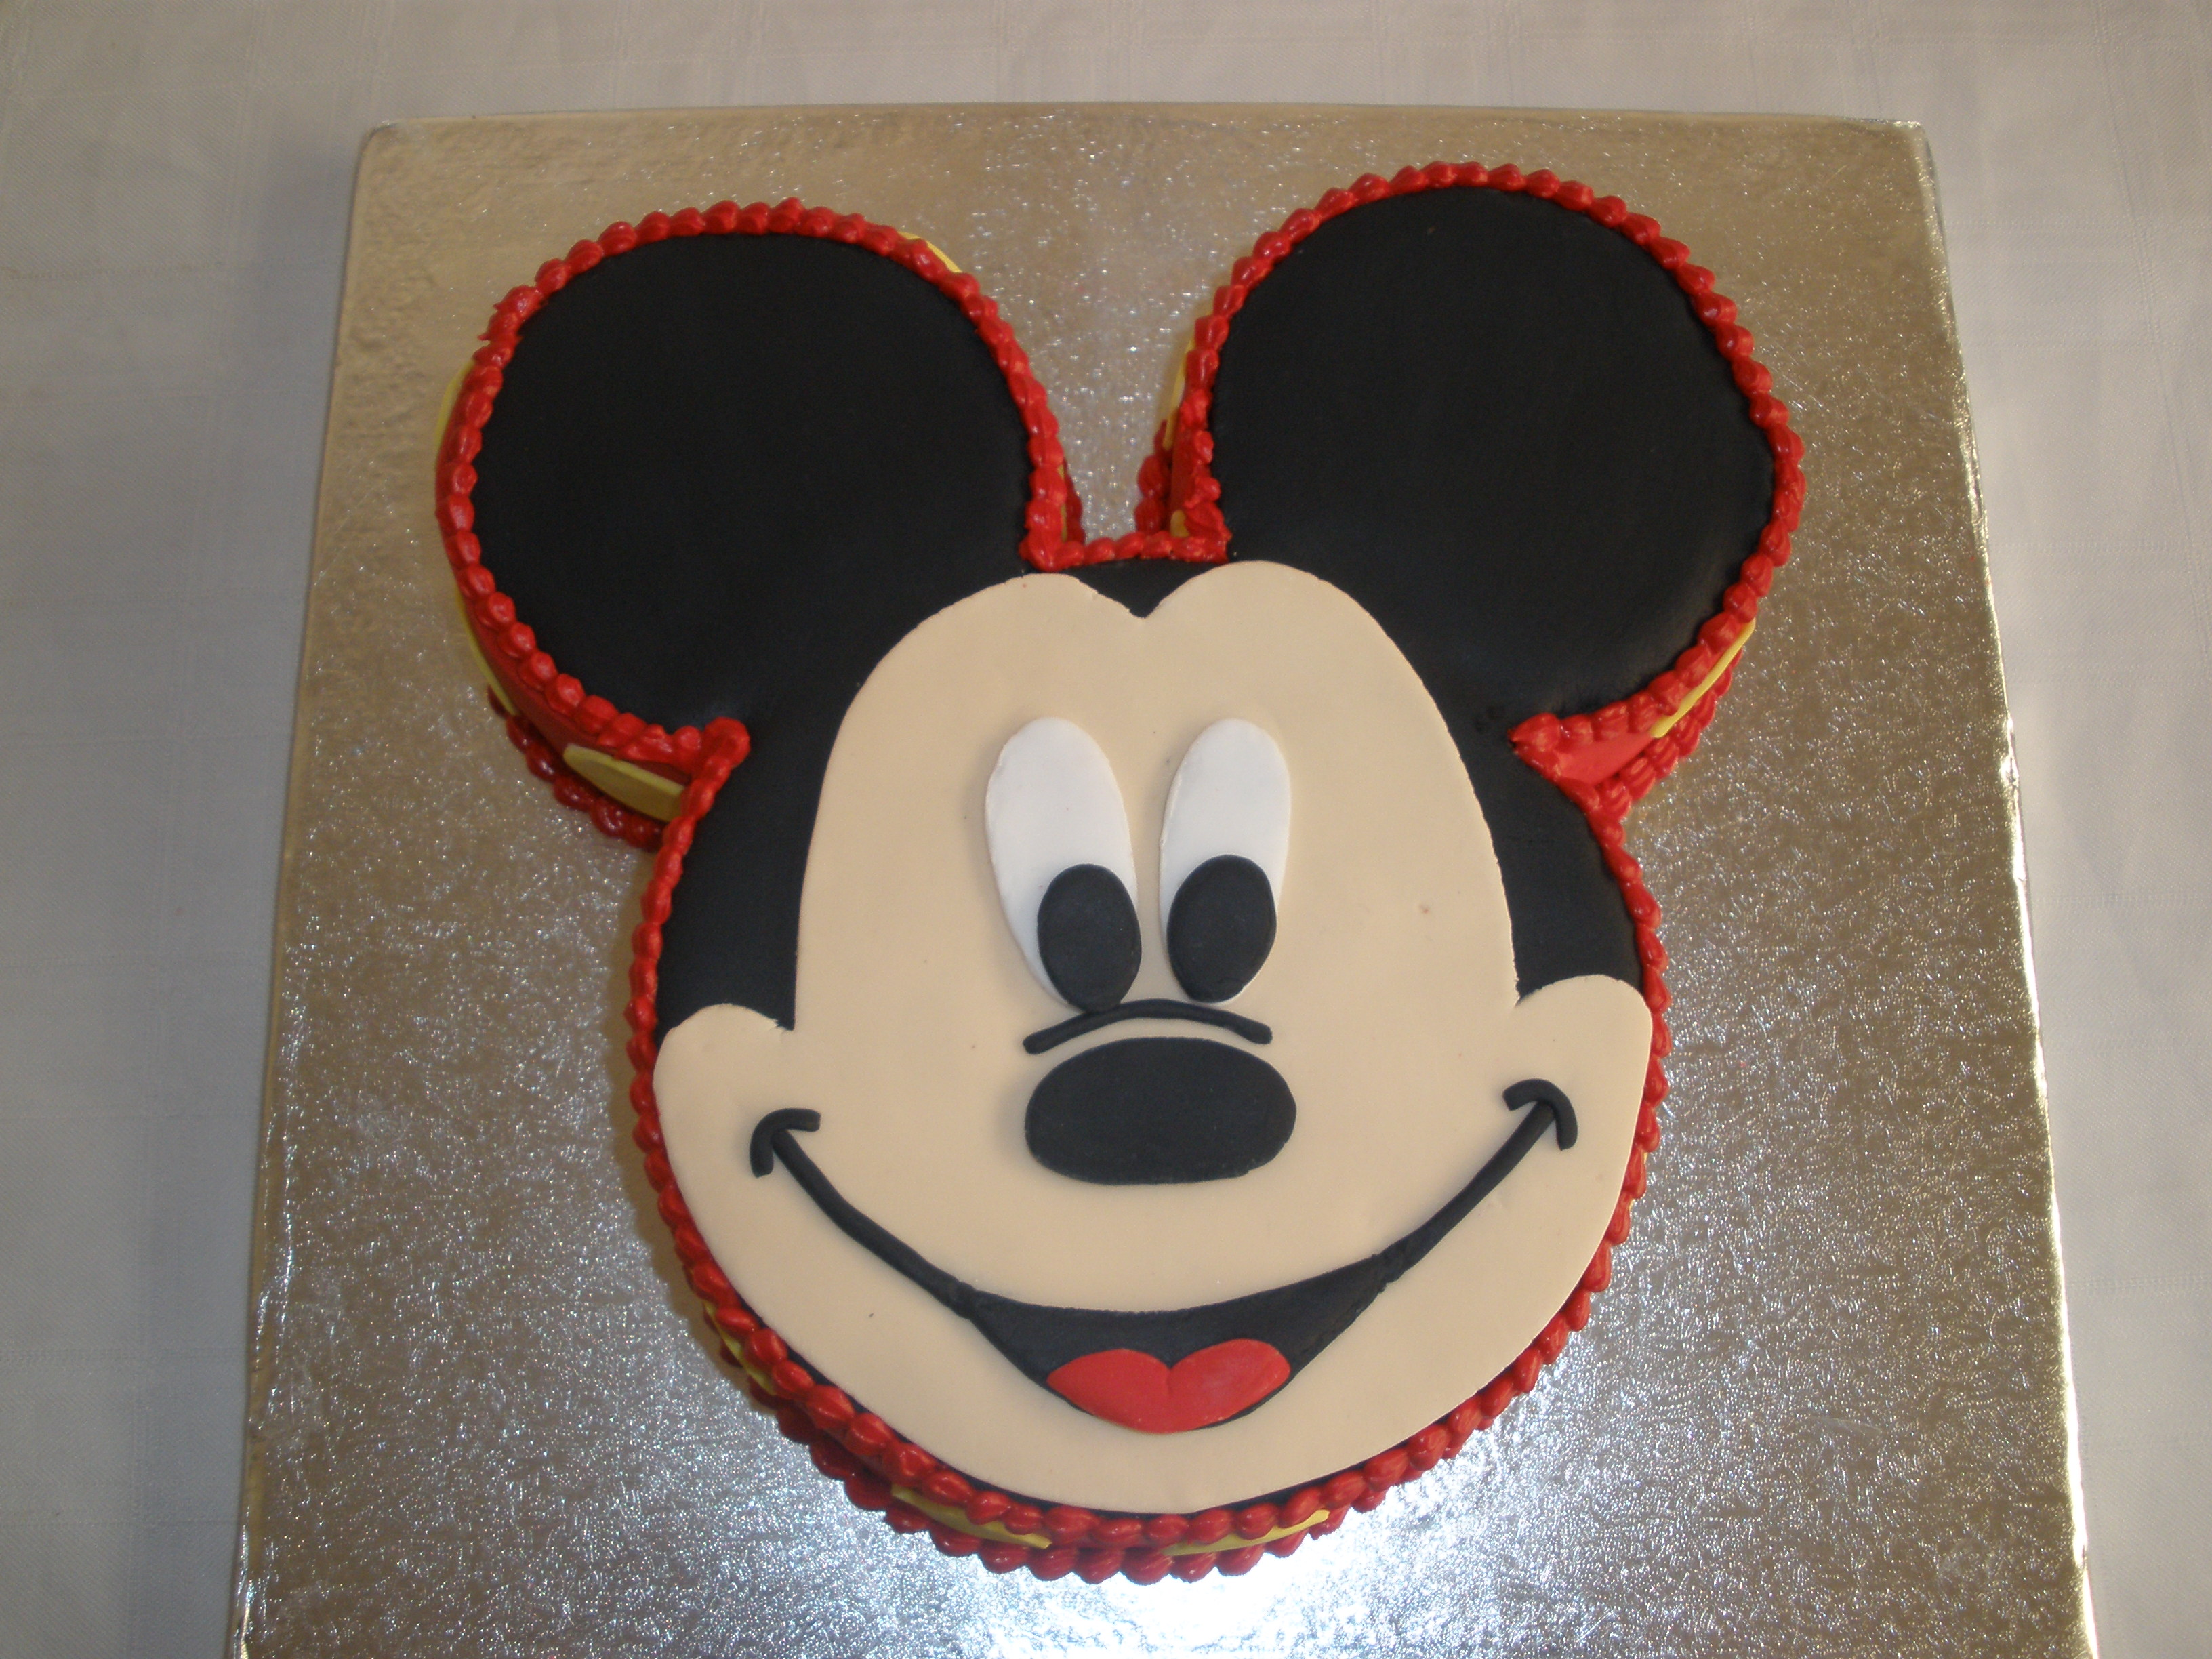 Pictures Of Mickey Mouse Face Cakes : Mickey Mouse Face Cake www.pixshark.com - Images ...